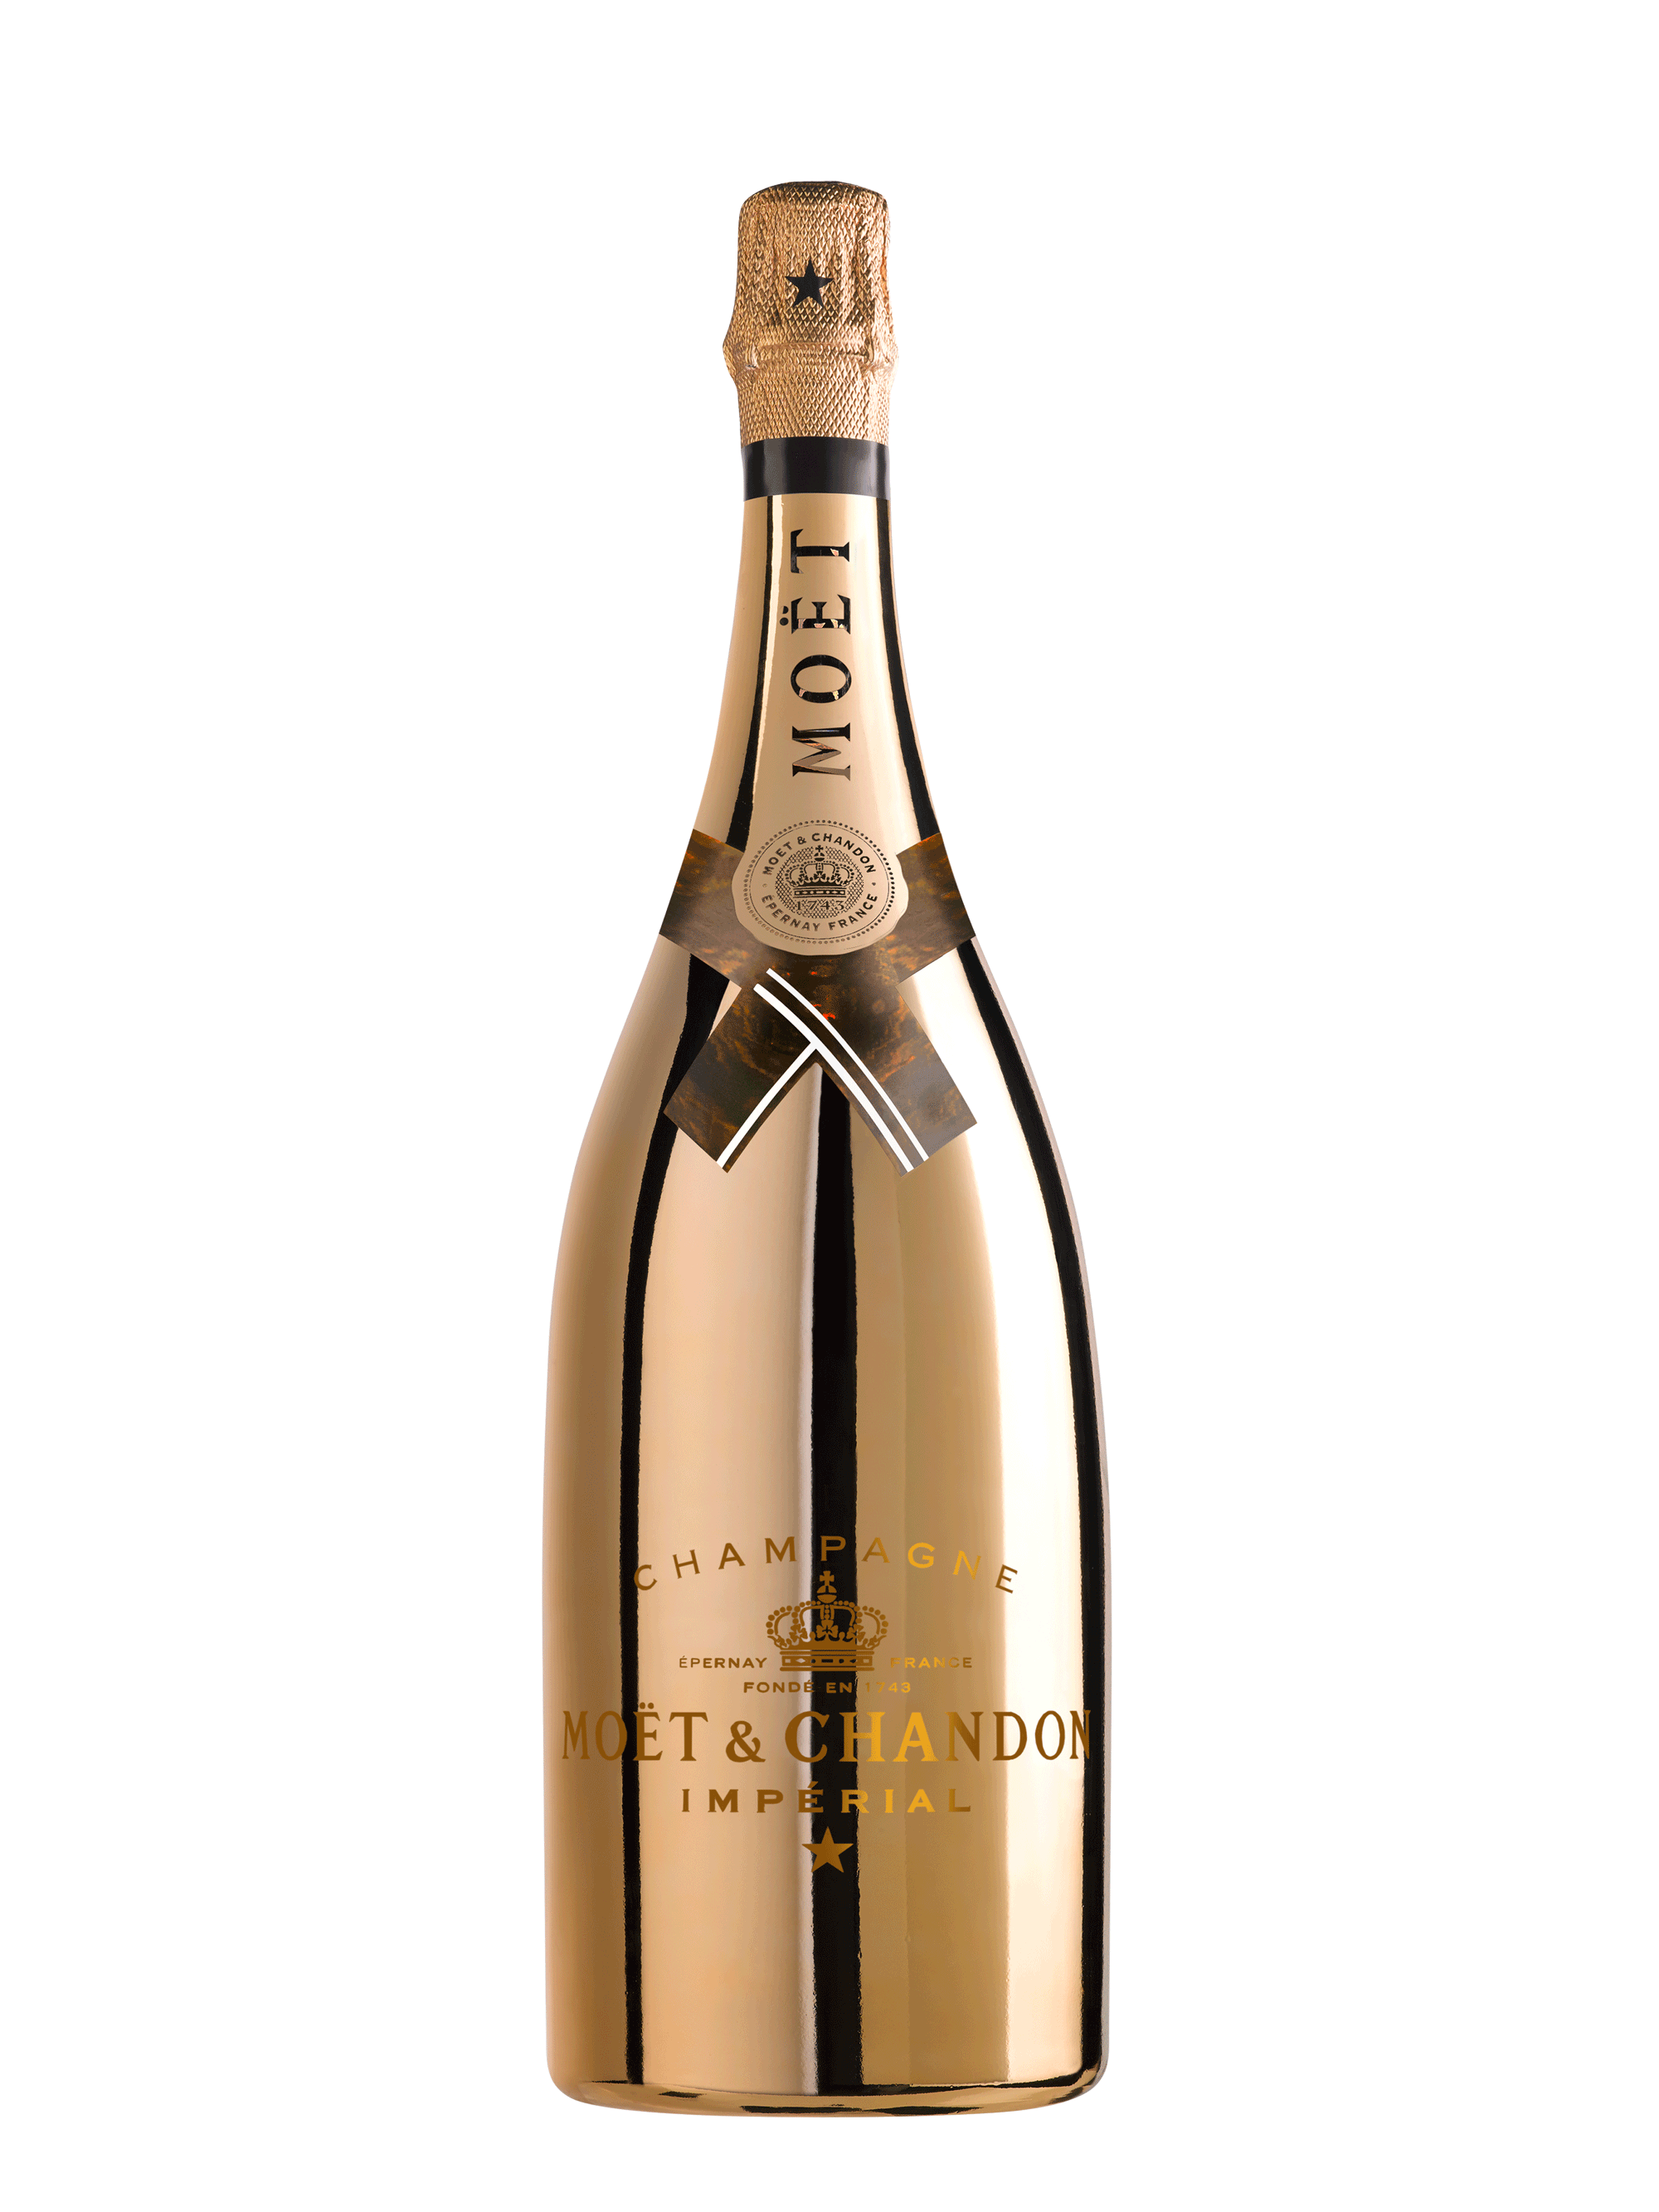 Moet bottle png. Chandon imperial bright night